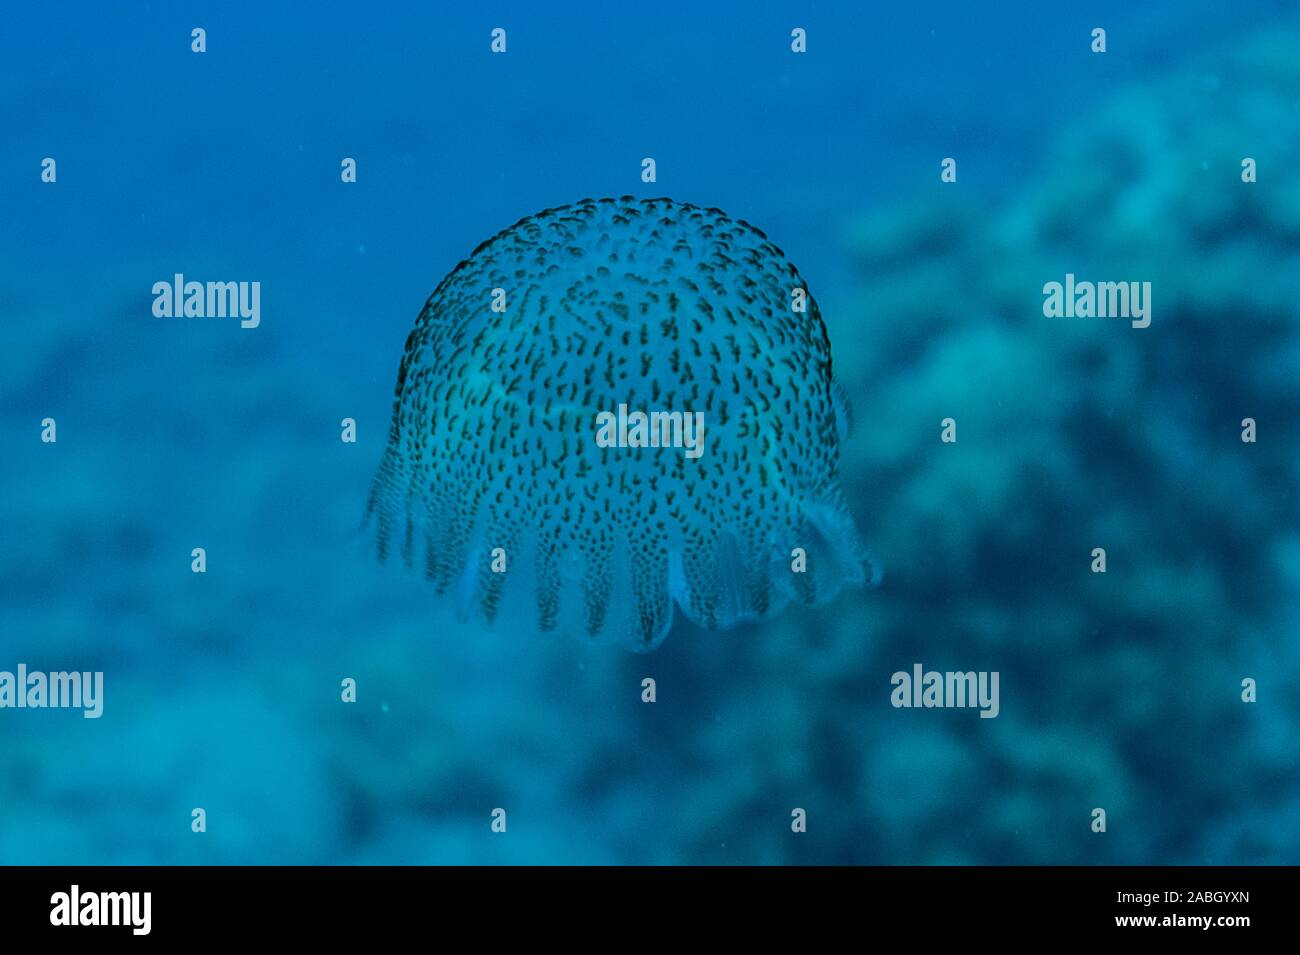 Pelagia noctiuca Stock Photo